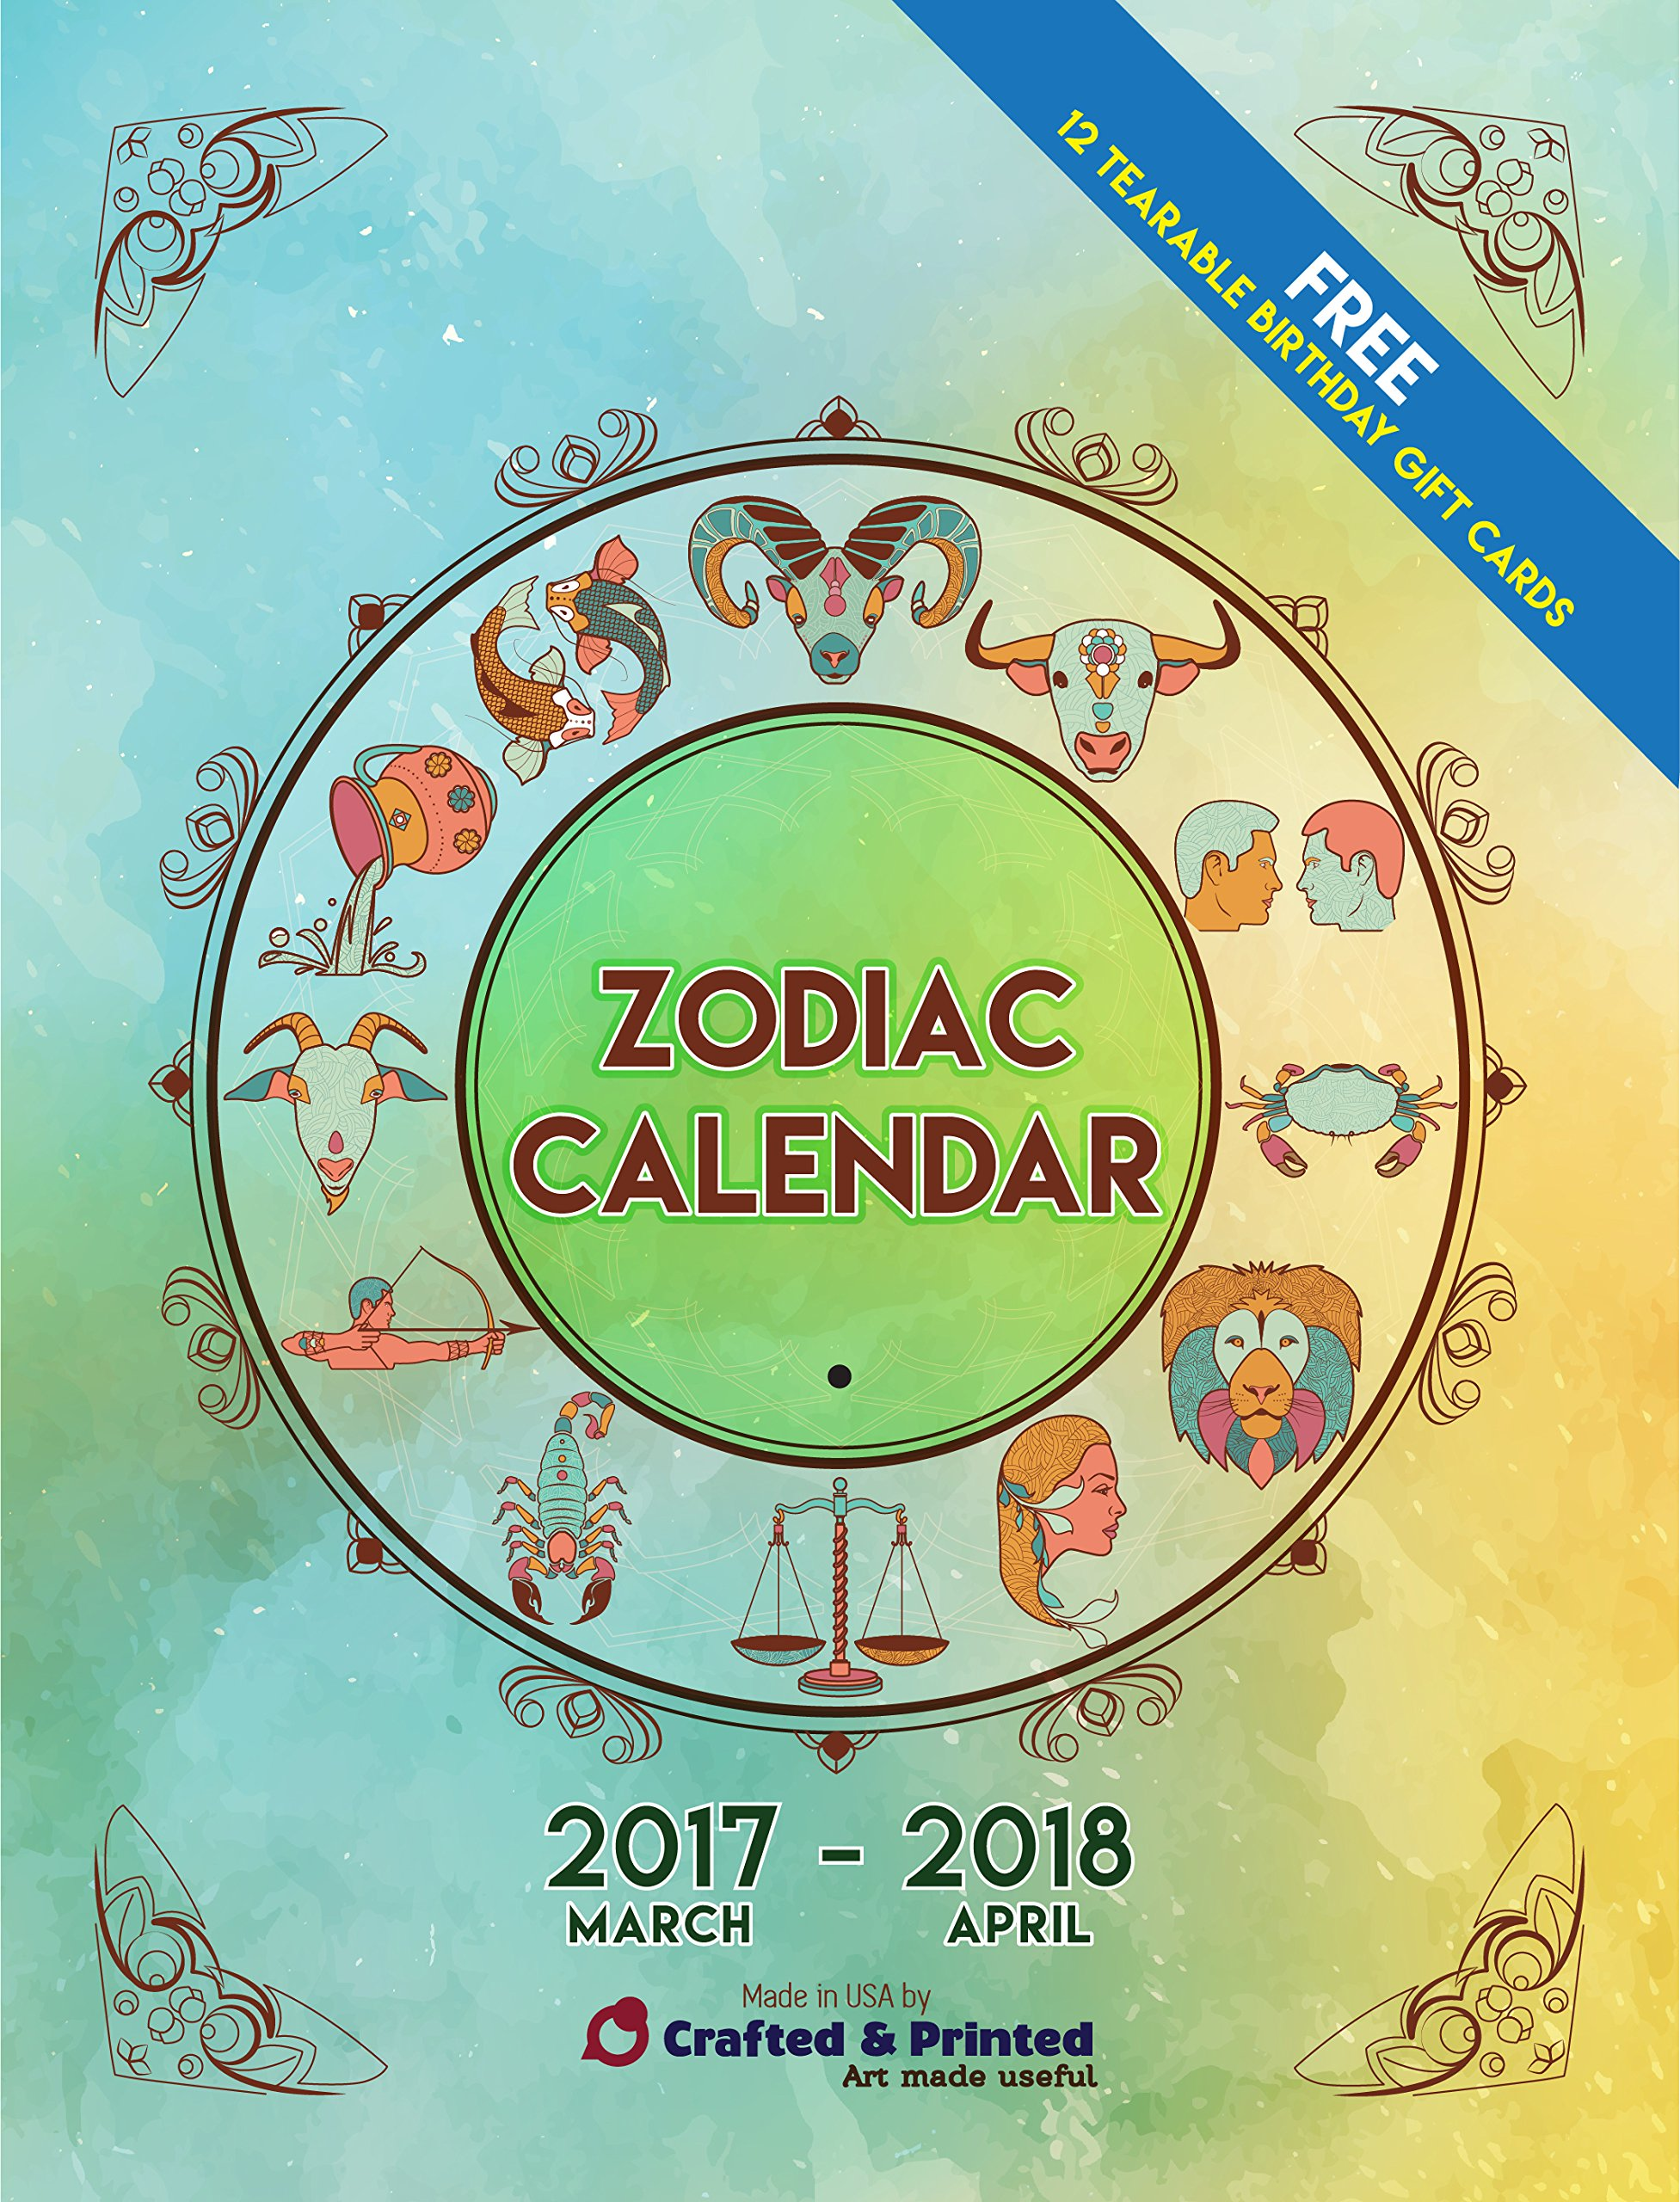 Zodiac Calendar 2017 2018  Starts in Aries (March)  Wall mounted  12 free  Signs gift cards  Monthly lunar phases  Constellations signs